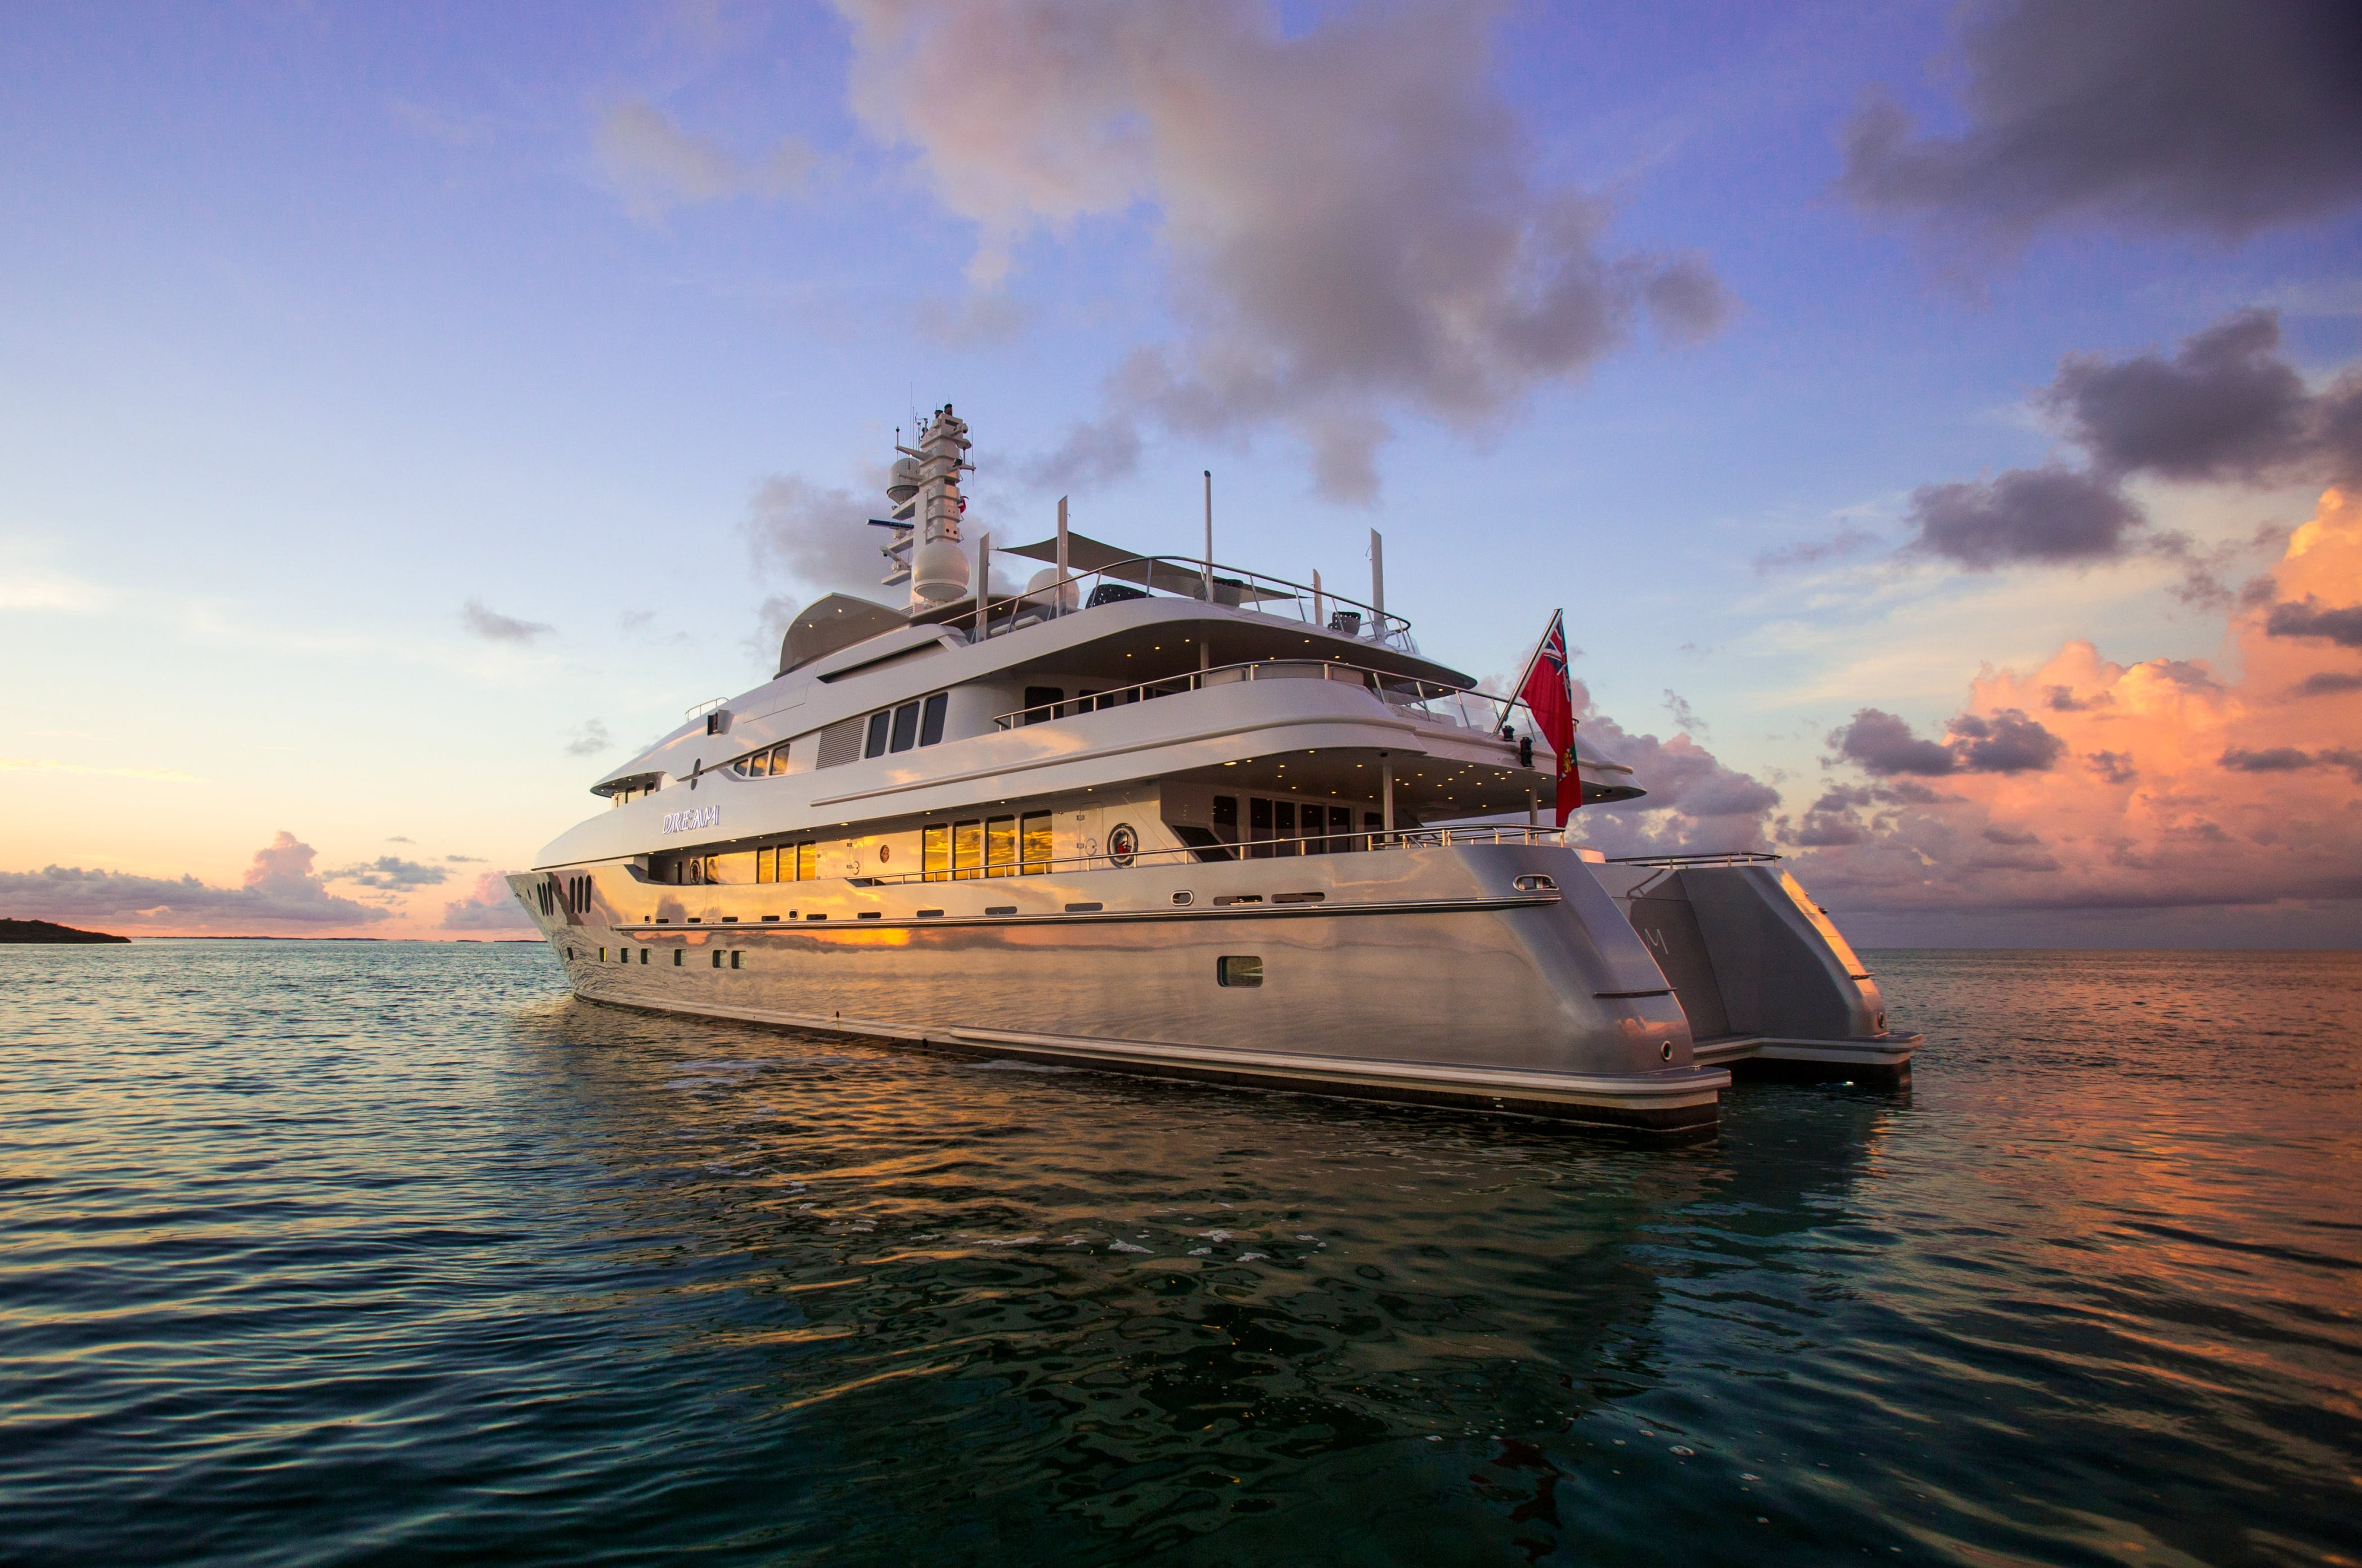 Seasonal Rates for DREAM Private Luxury Yacht For Charter